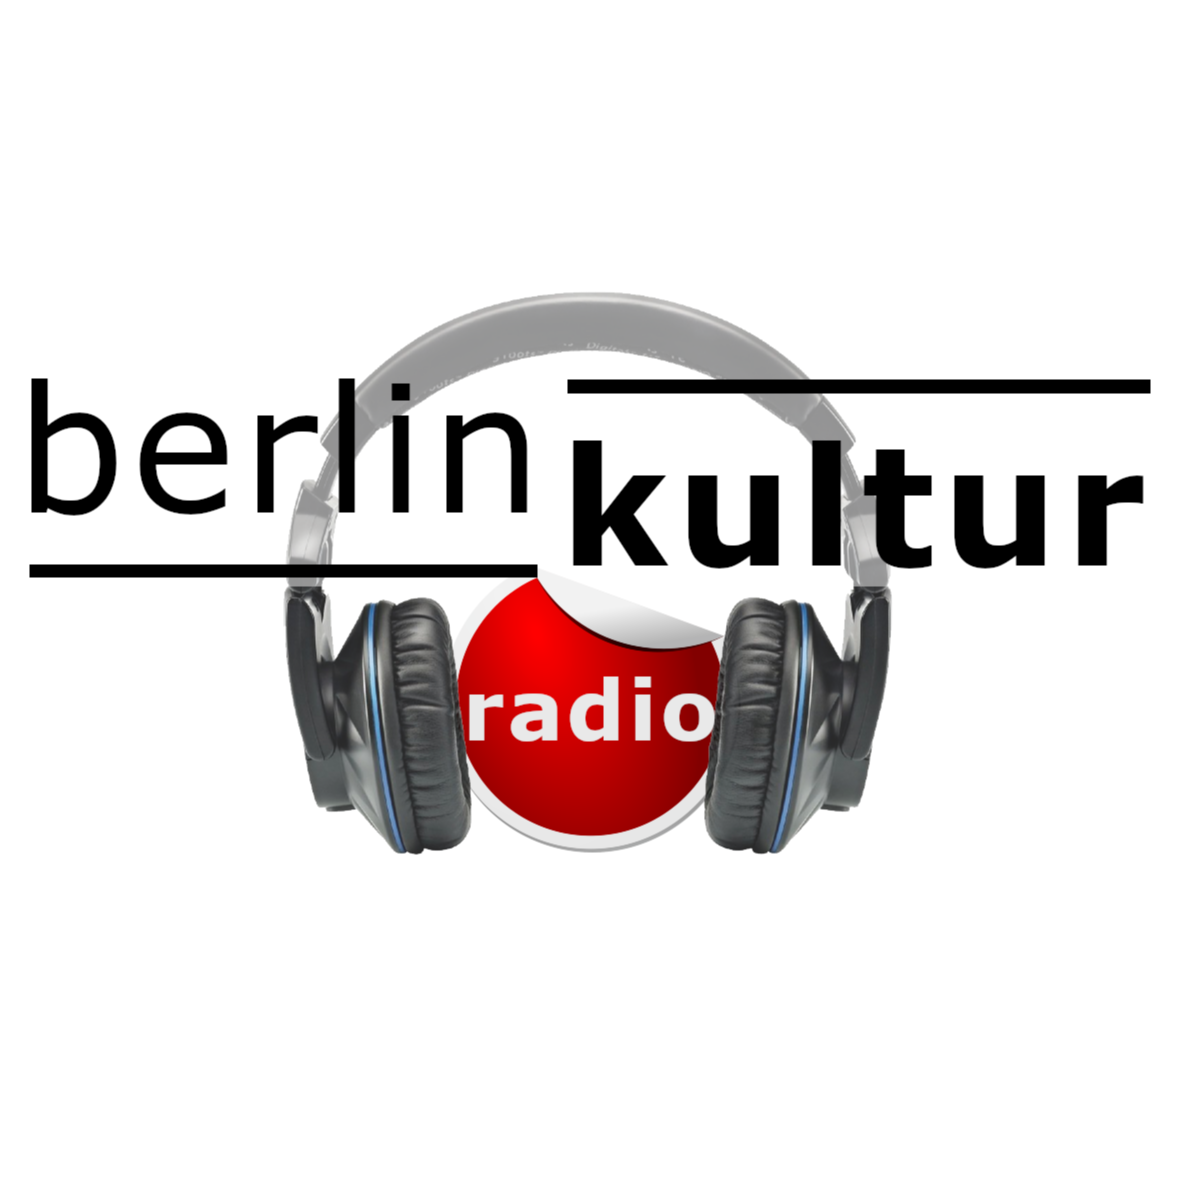 BerlinKULTURpunktRADIO